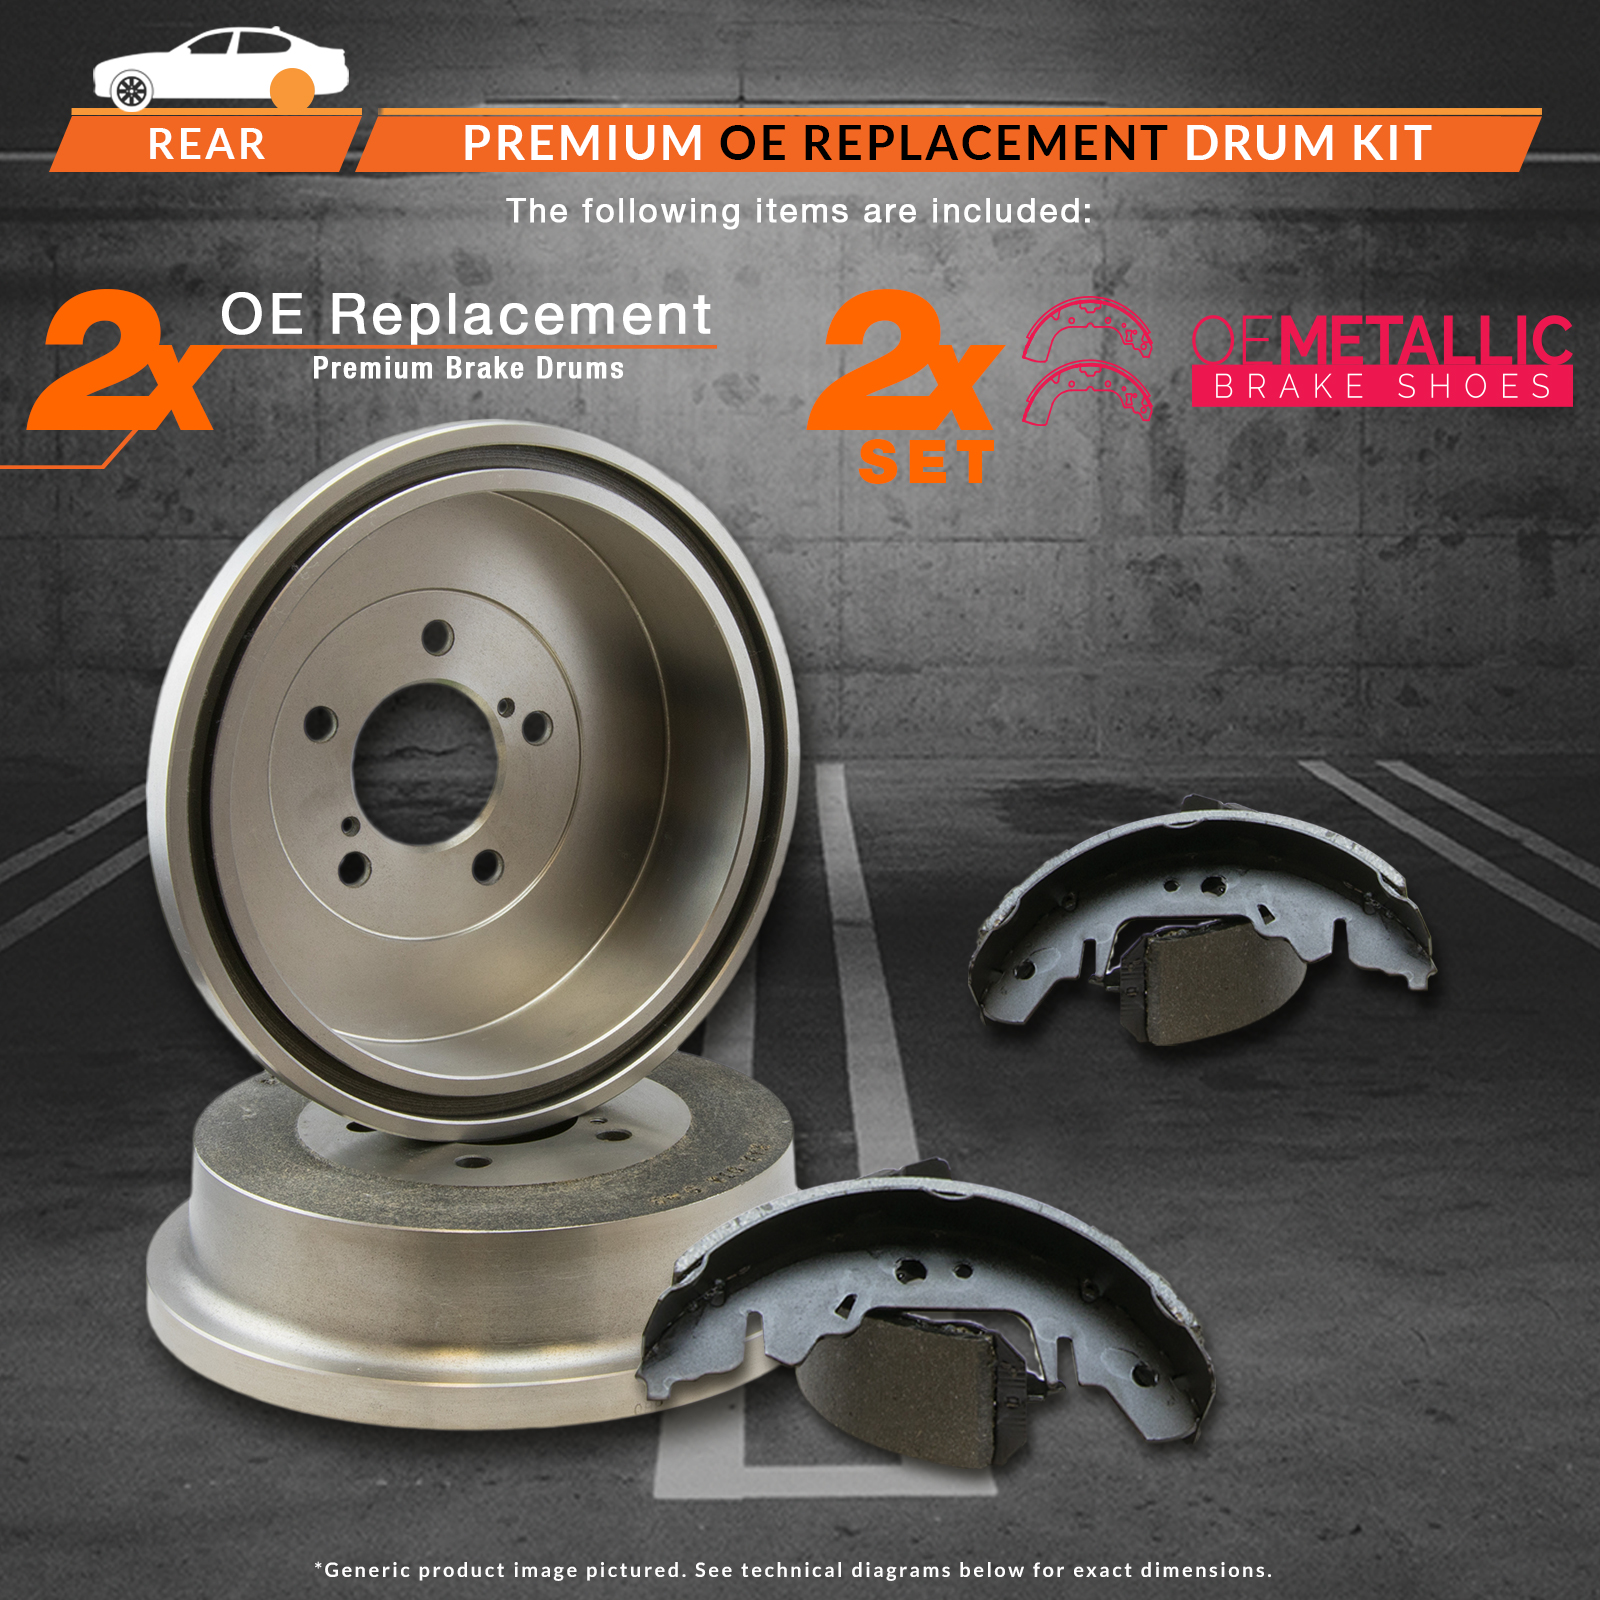 REAR-KIT-Premium-OE-Replacement-Brake-Drums-AND-Shoes thumbnail 2